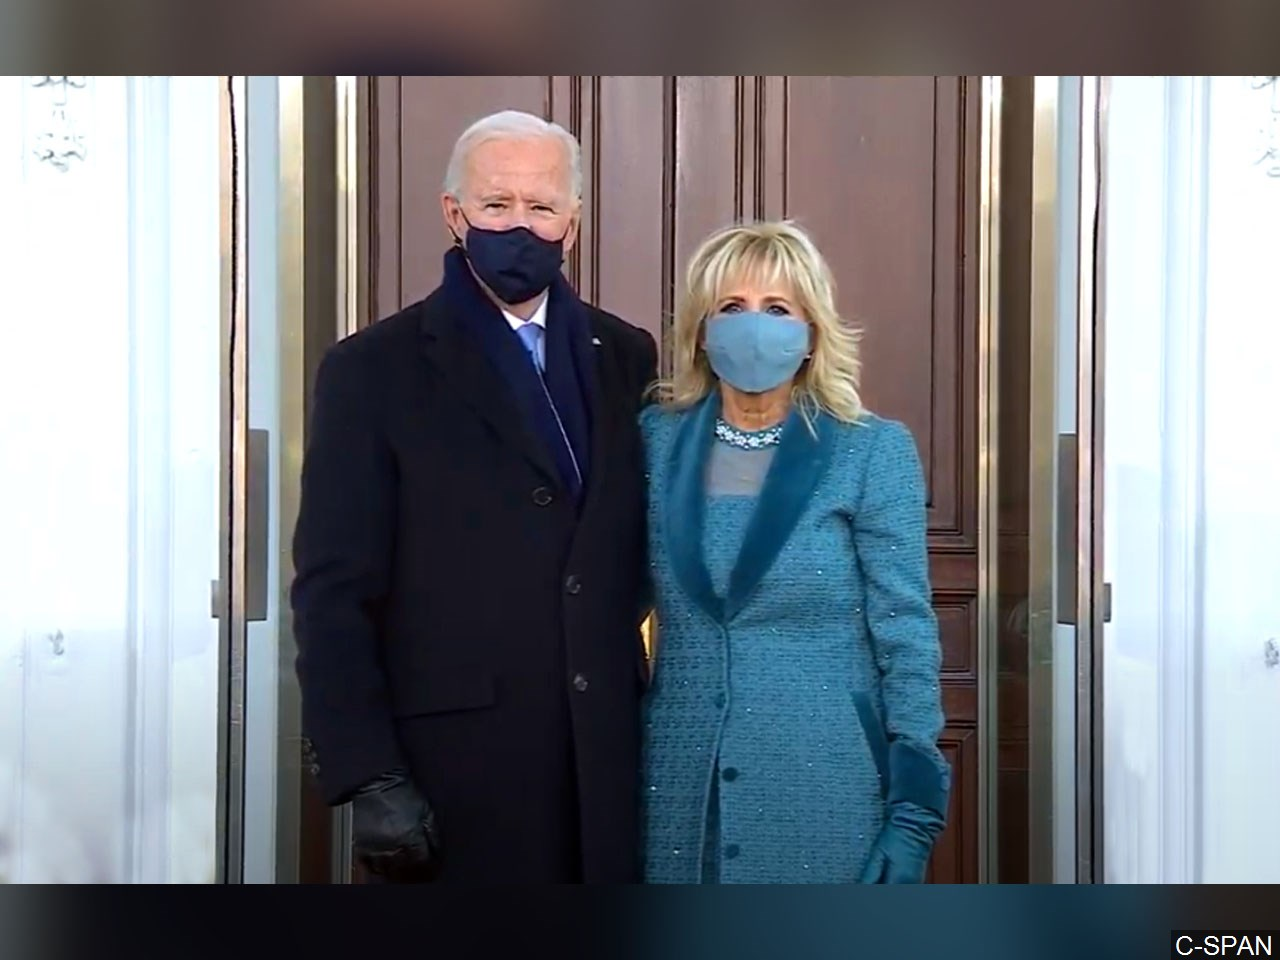 President Joe Biden and first lady Jill Biden at the presidential inauguration on Wednesday, Jan. 20. 2021.